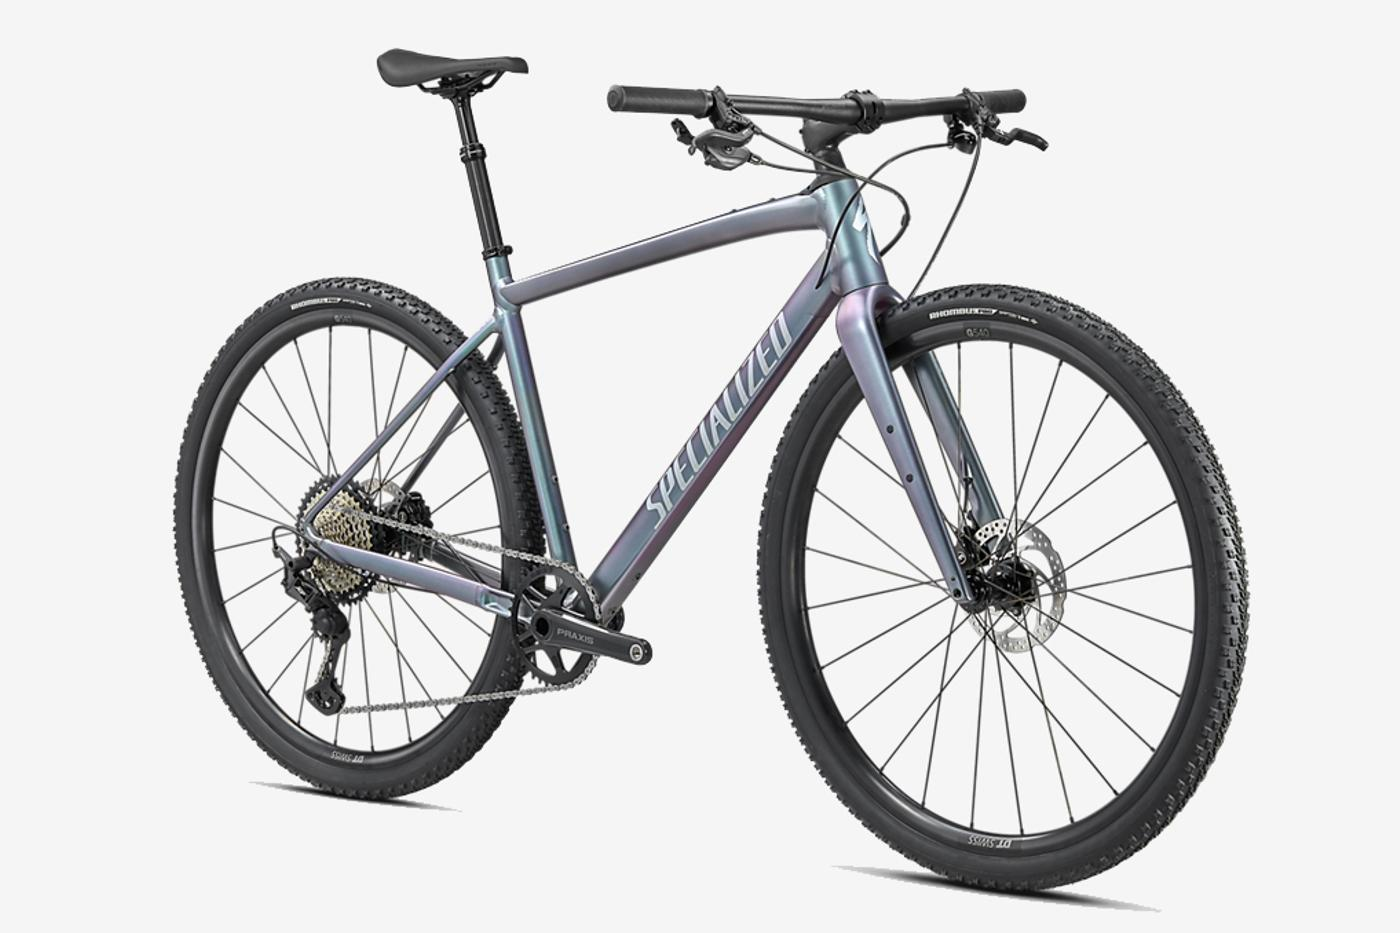 Specialized Listened: the New Diverge Comes in a Flat Bar Expert E5 EVO Model